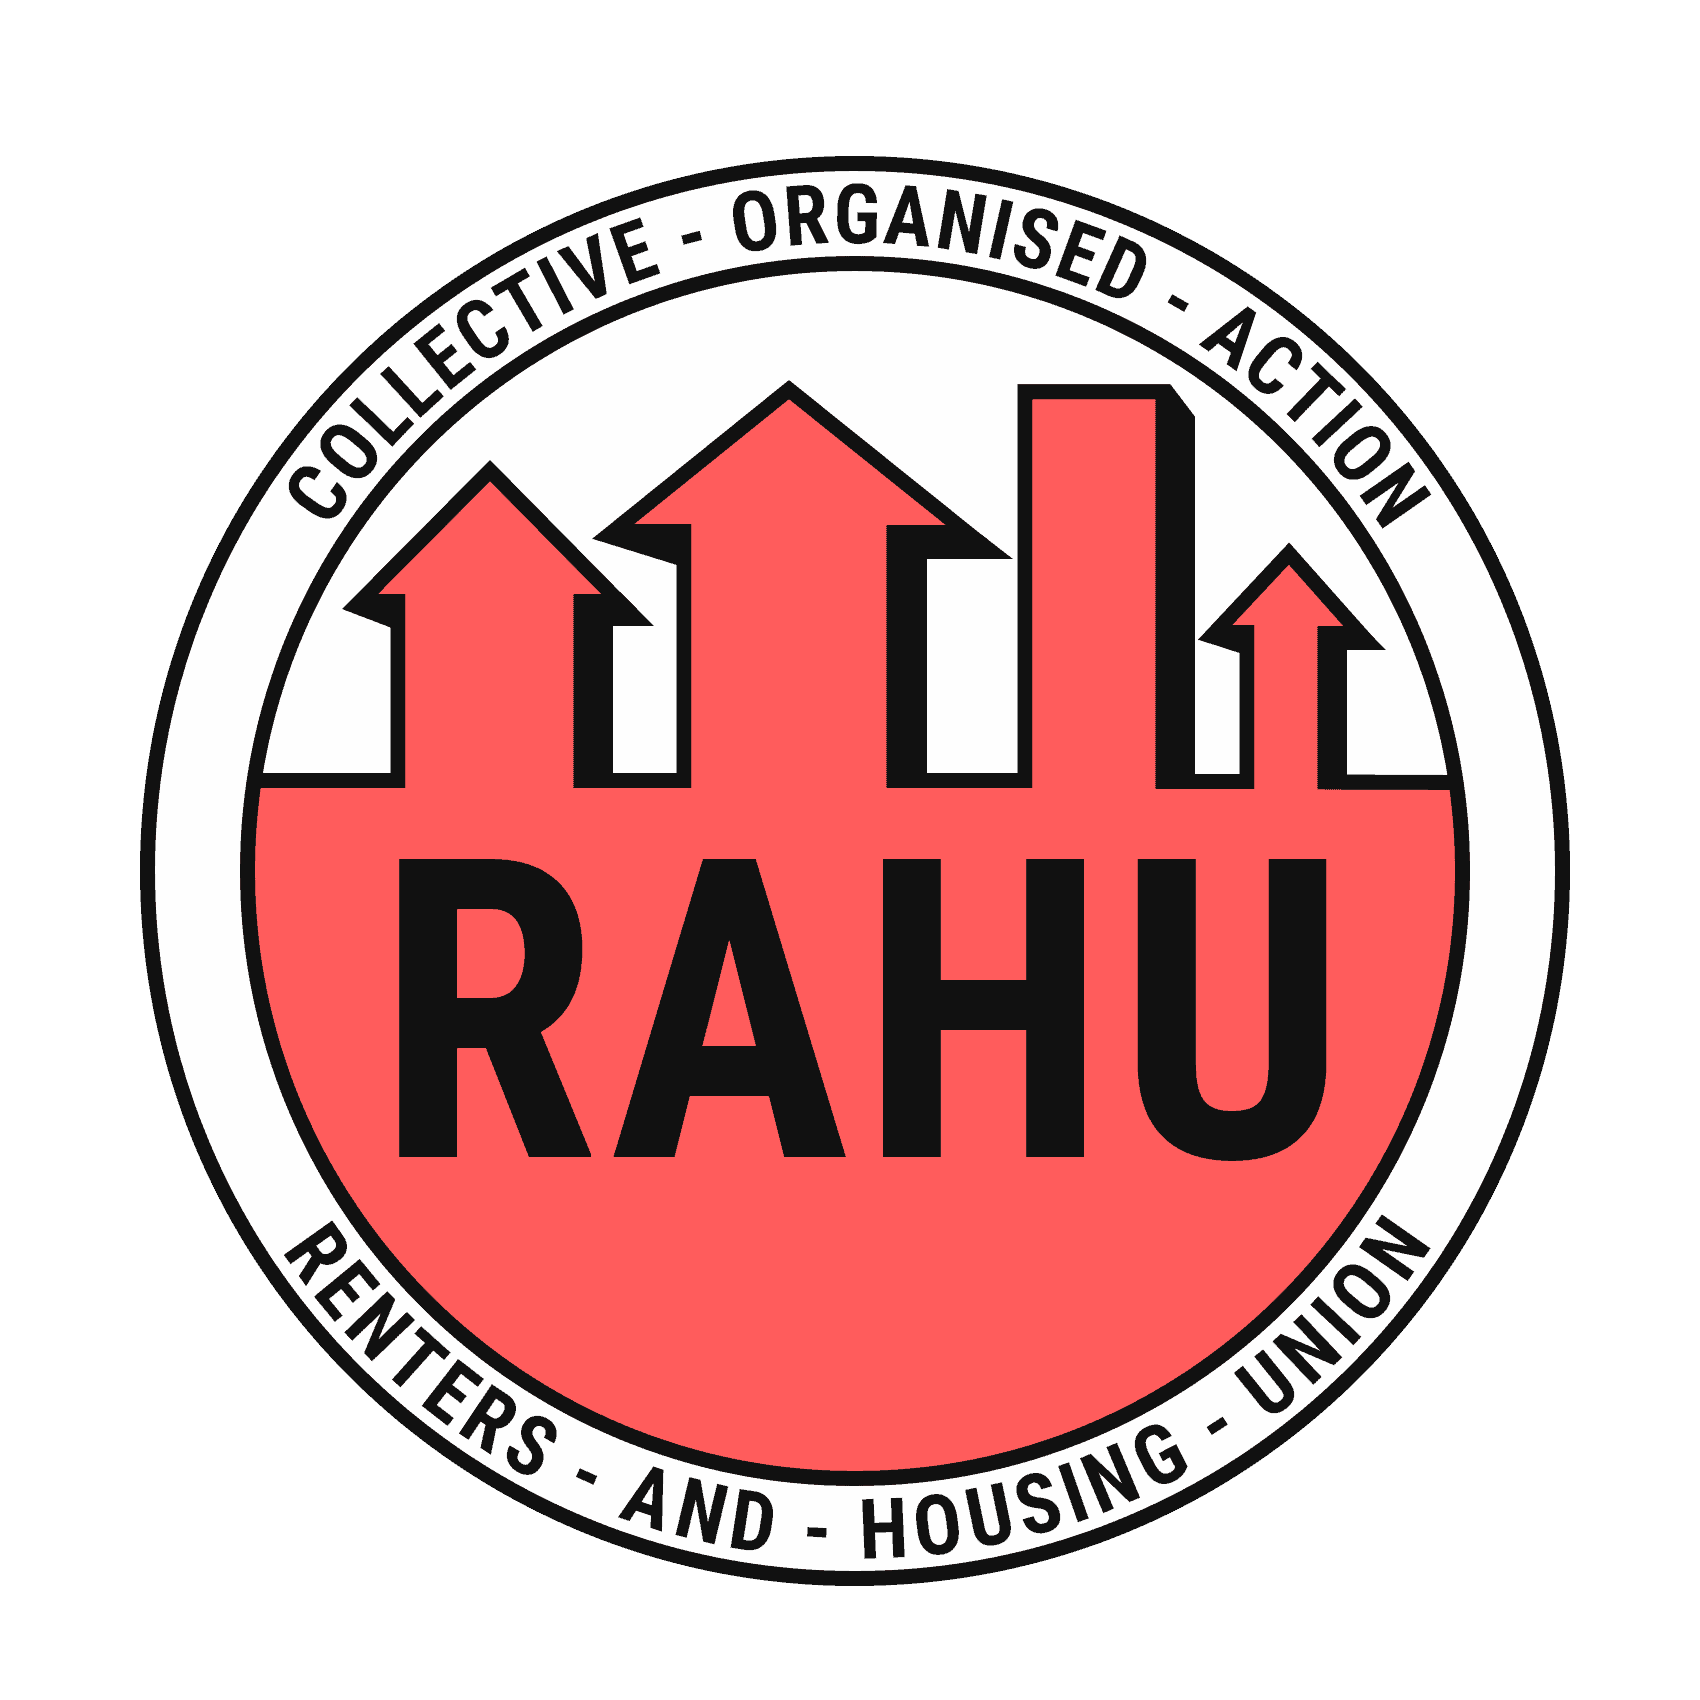 Renters and Housing Union